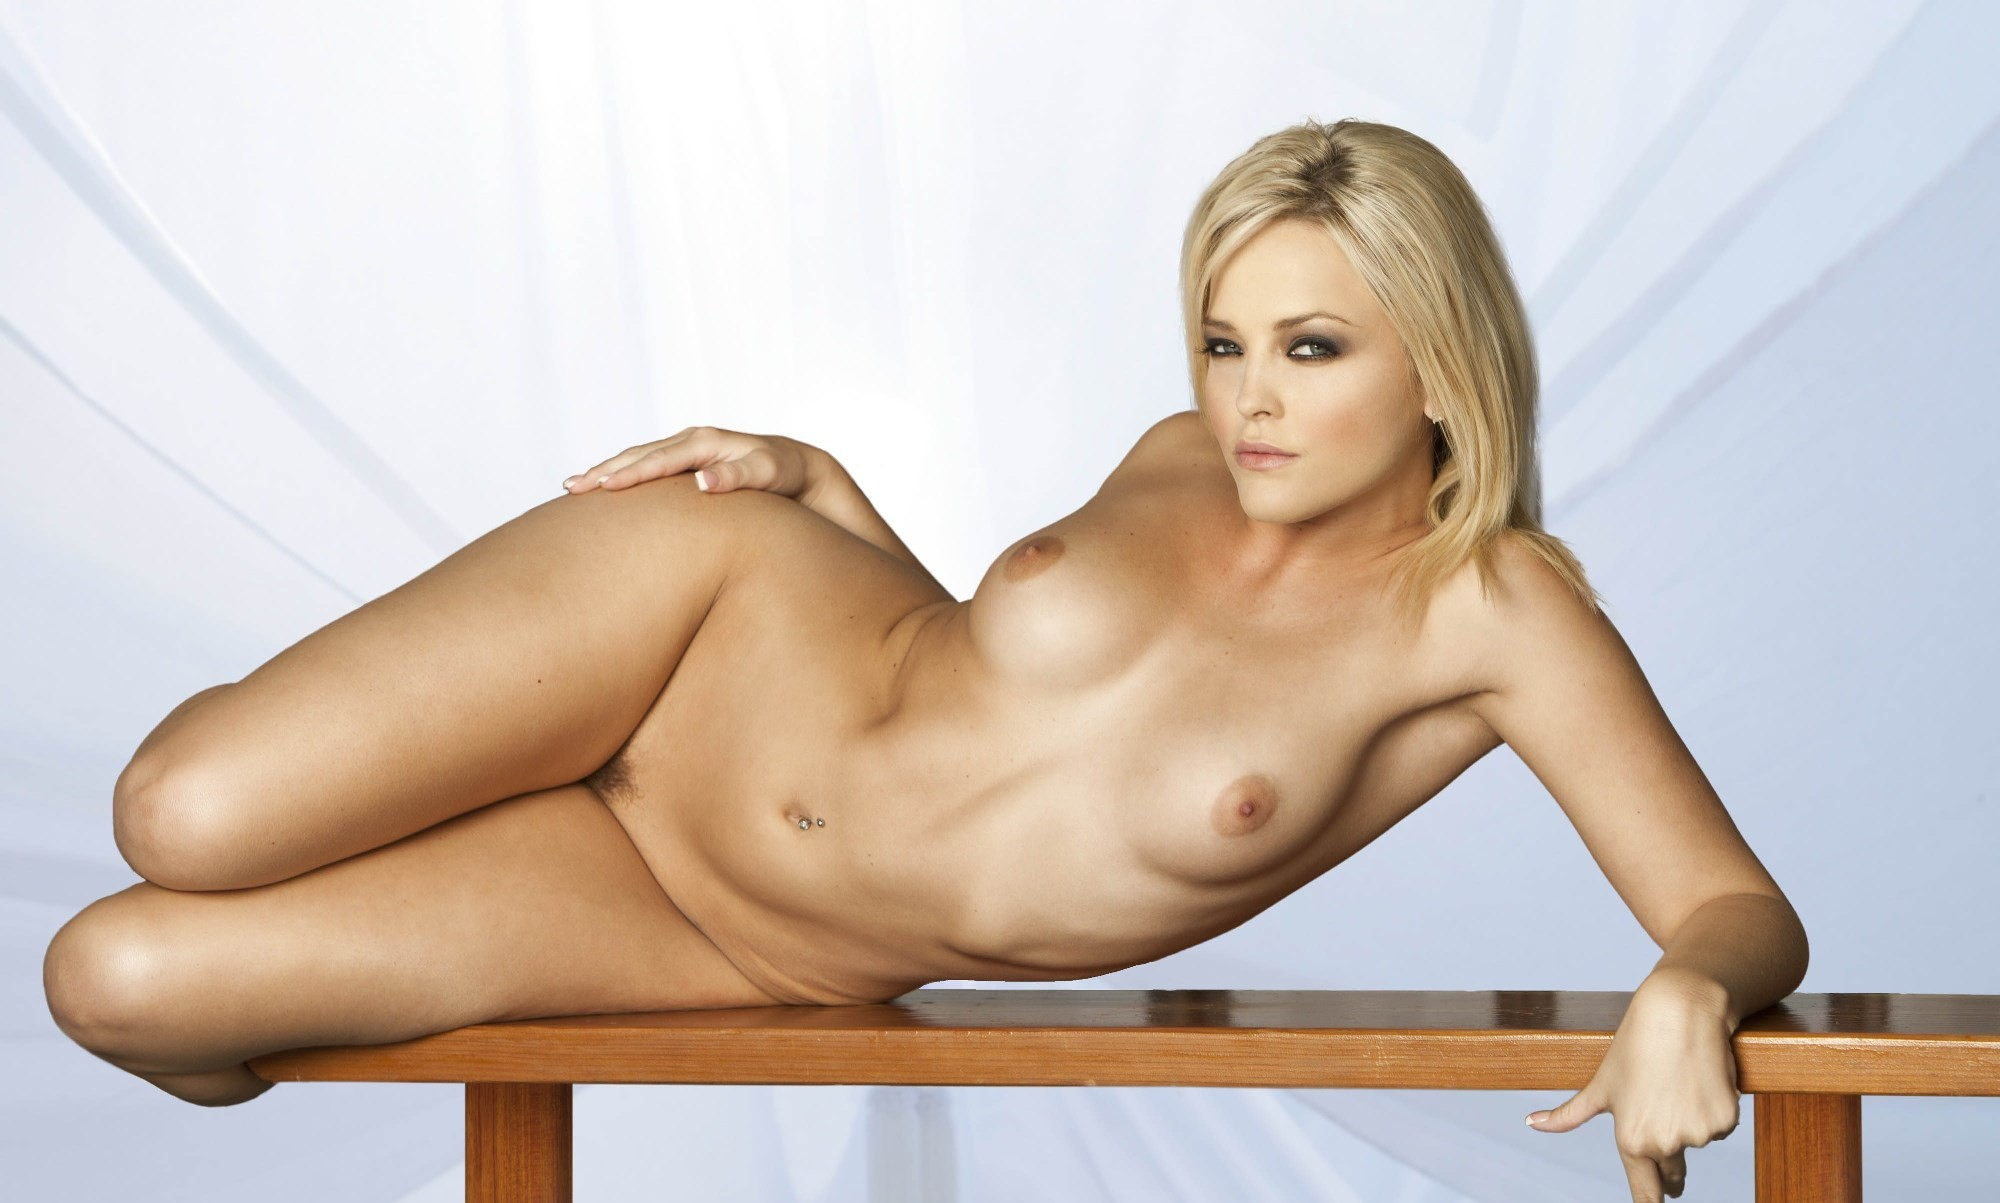 Download 2000x1203 alexis texas, nude, tits, trimmed Porno ...